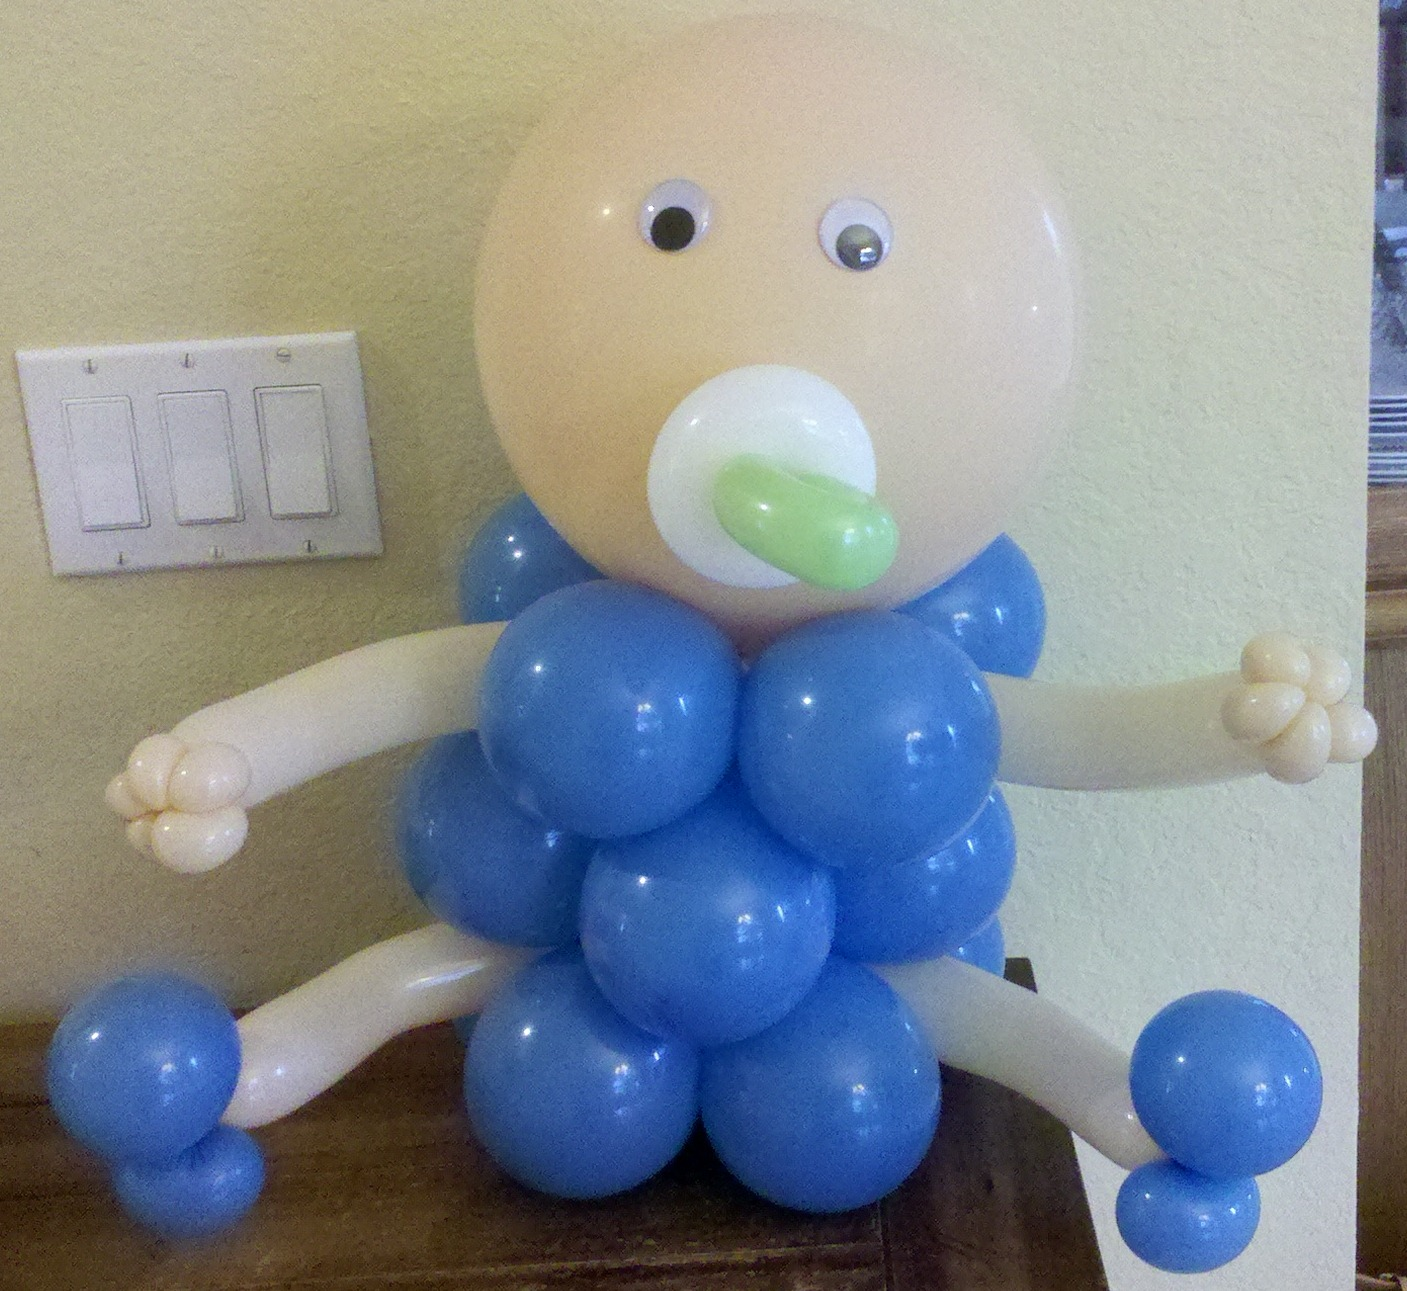 Party people event decorating company baby shower lakeland fl for Baby shower balloons decoration